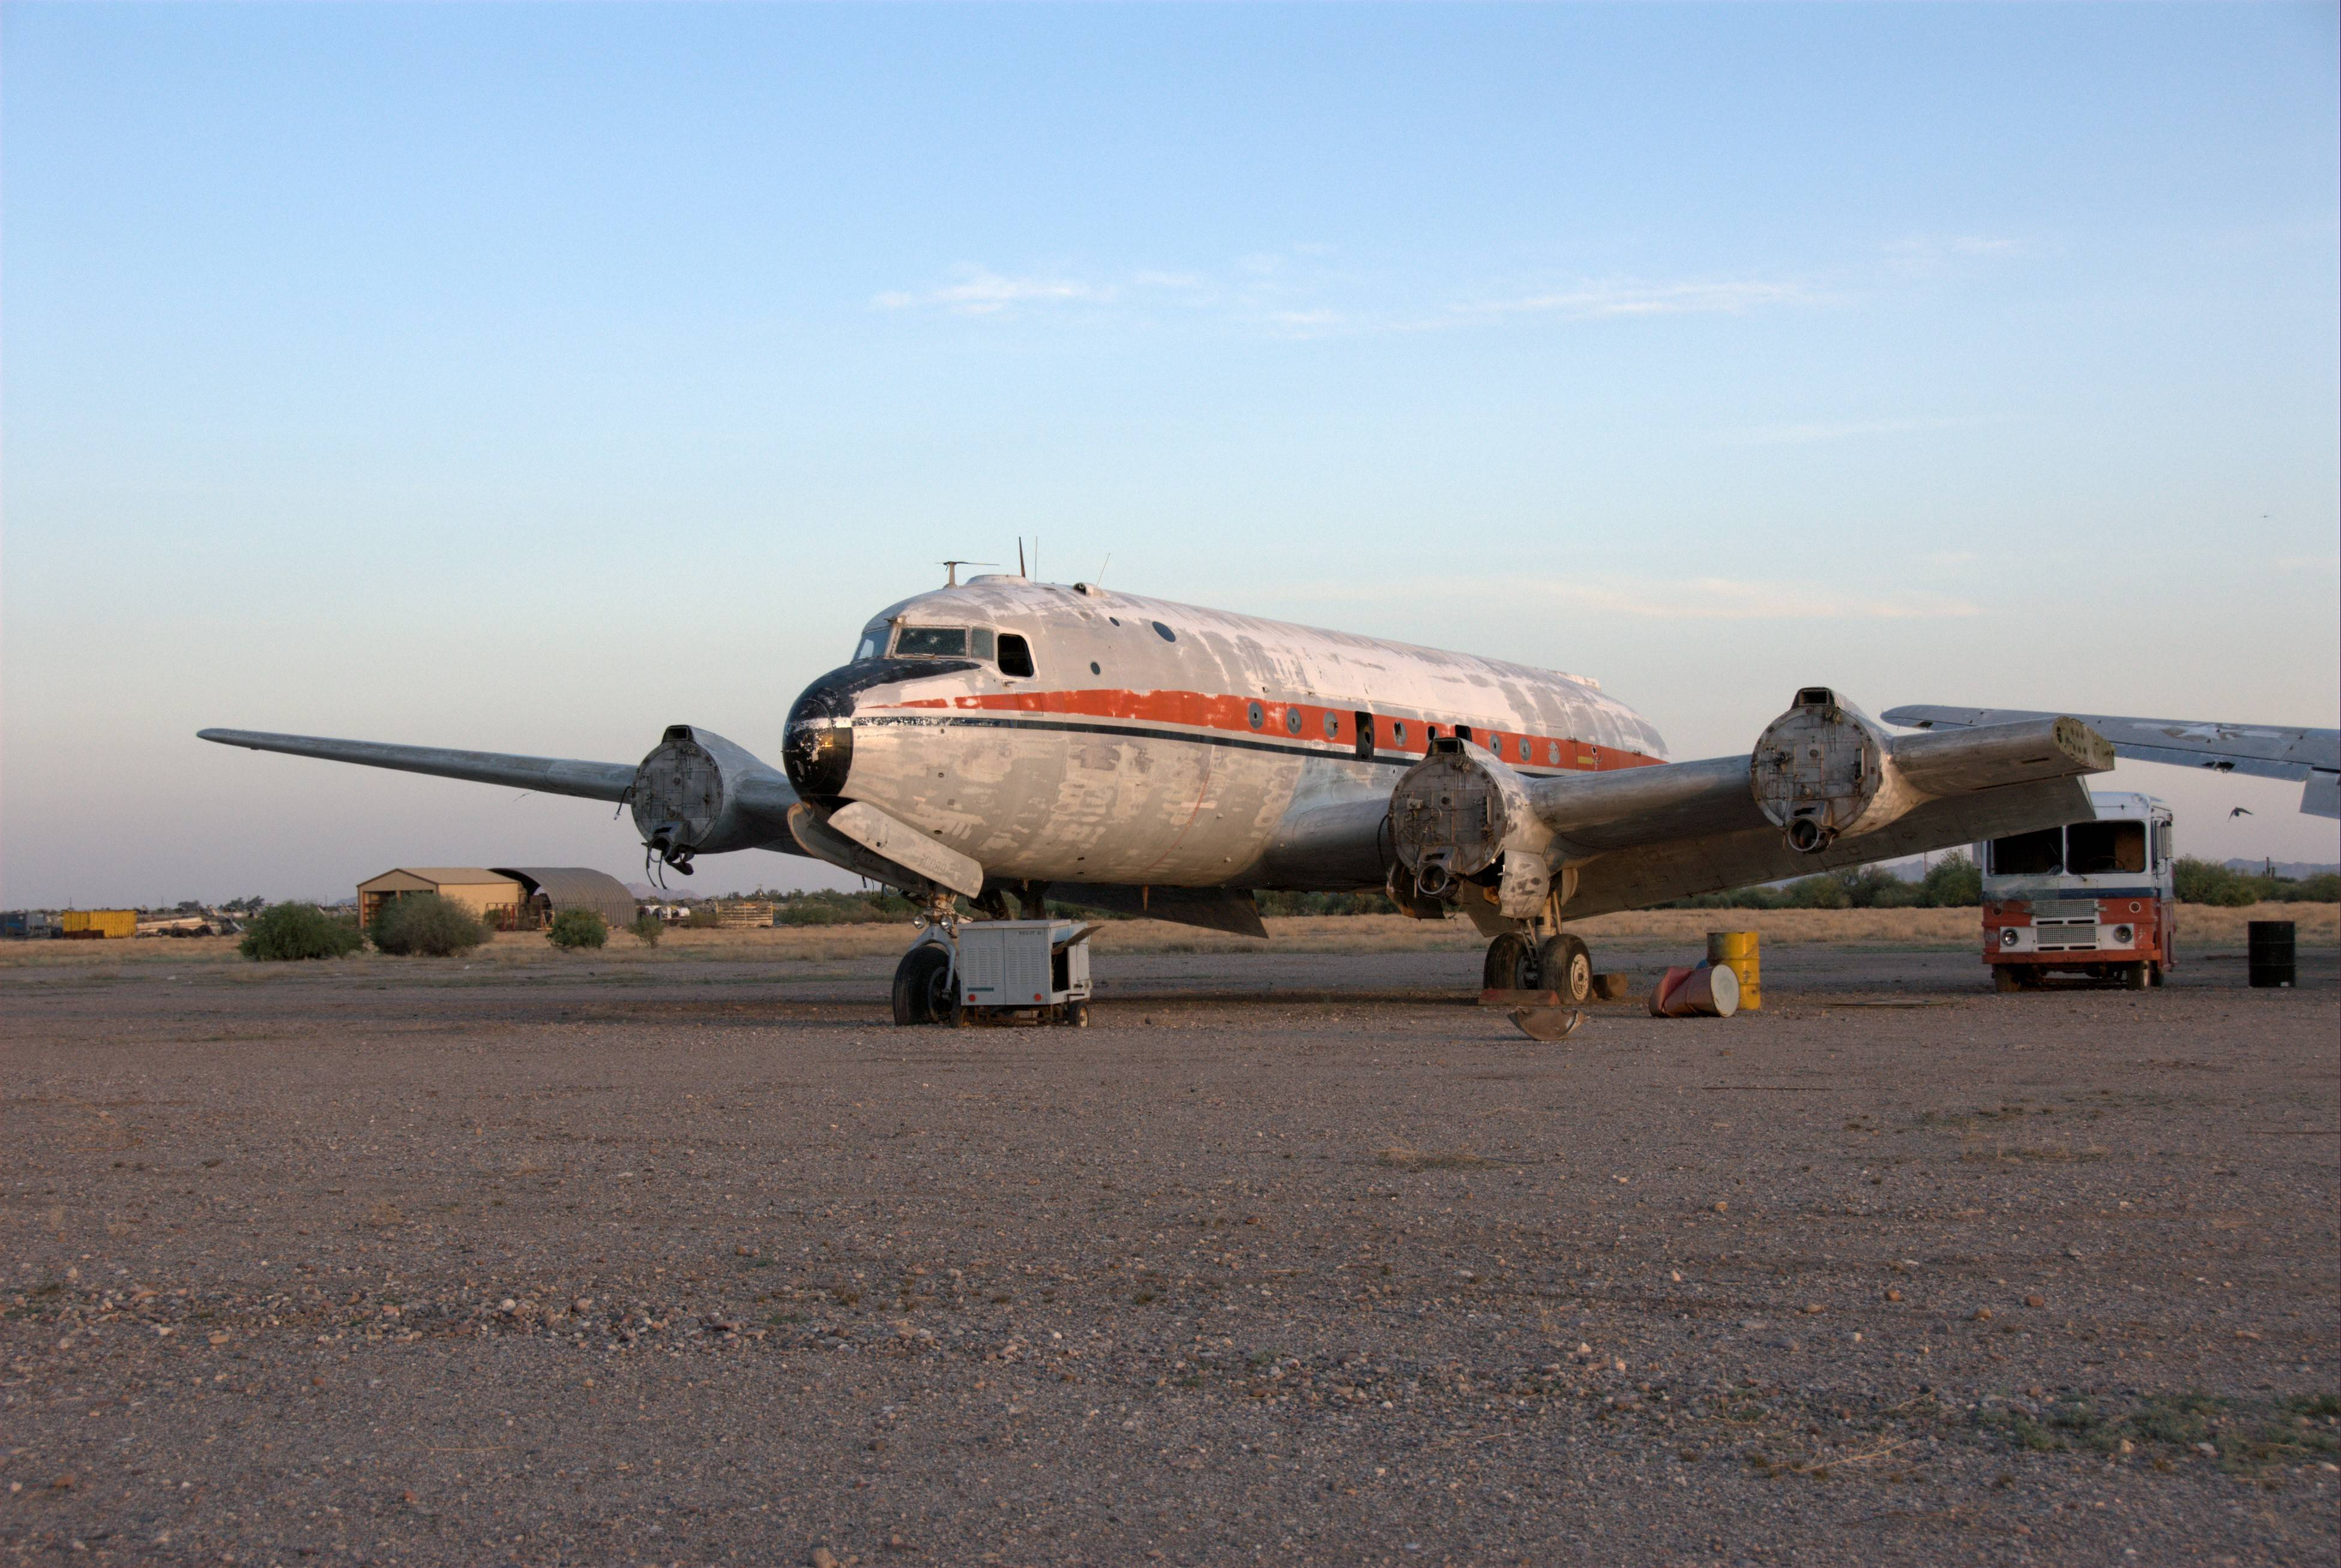 What remains of the Maine Flyer is at the Gila River Memorial Airport in Chandler, Arizona.